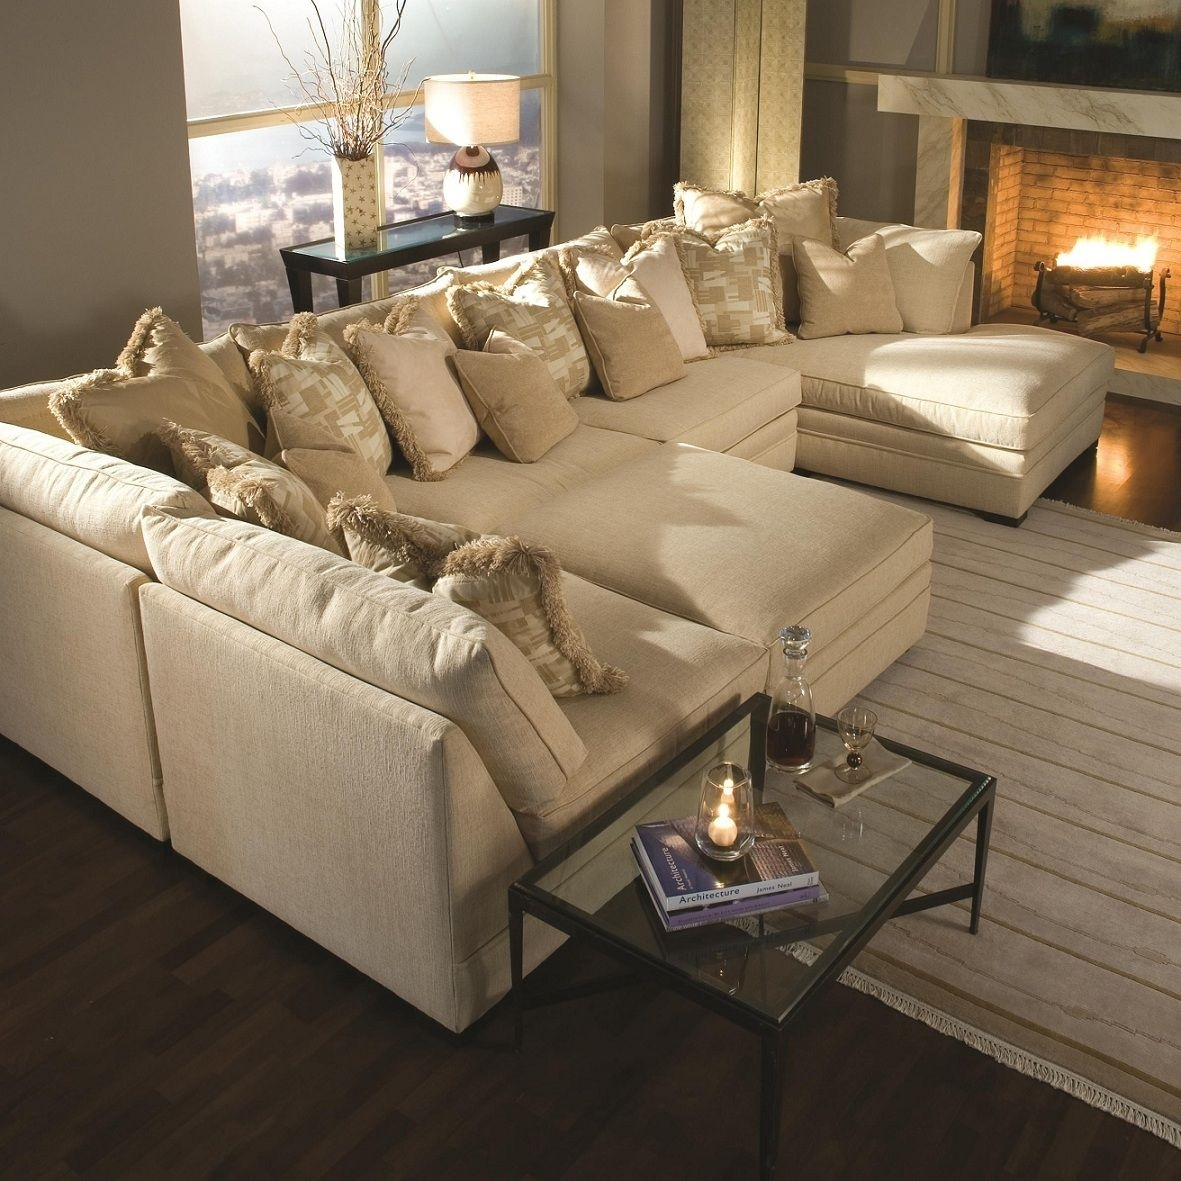 Cool Unique Extra Large Sectional Sofas With Chaise 24 For Your Pertaining To Sectional Sofas With Chaise And Ottoman (View 9 of 10)